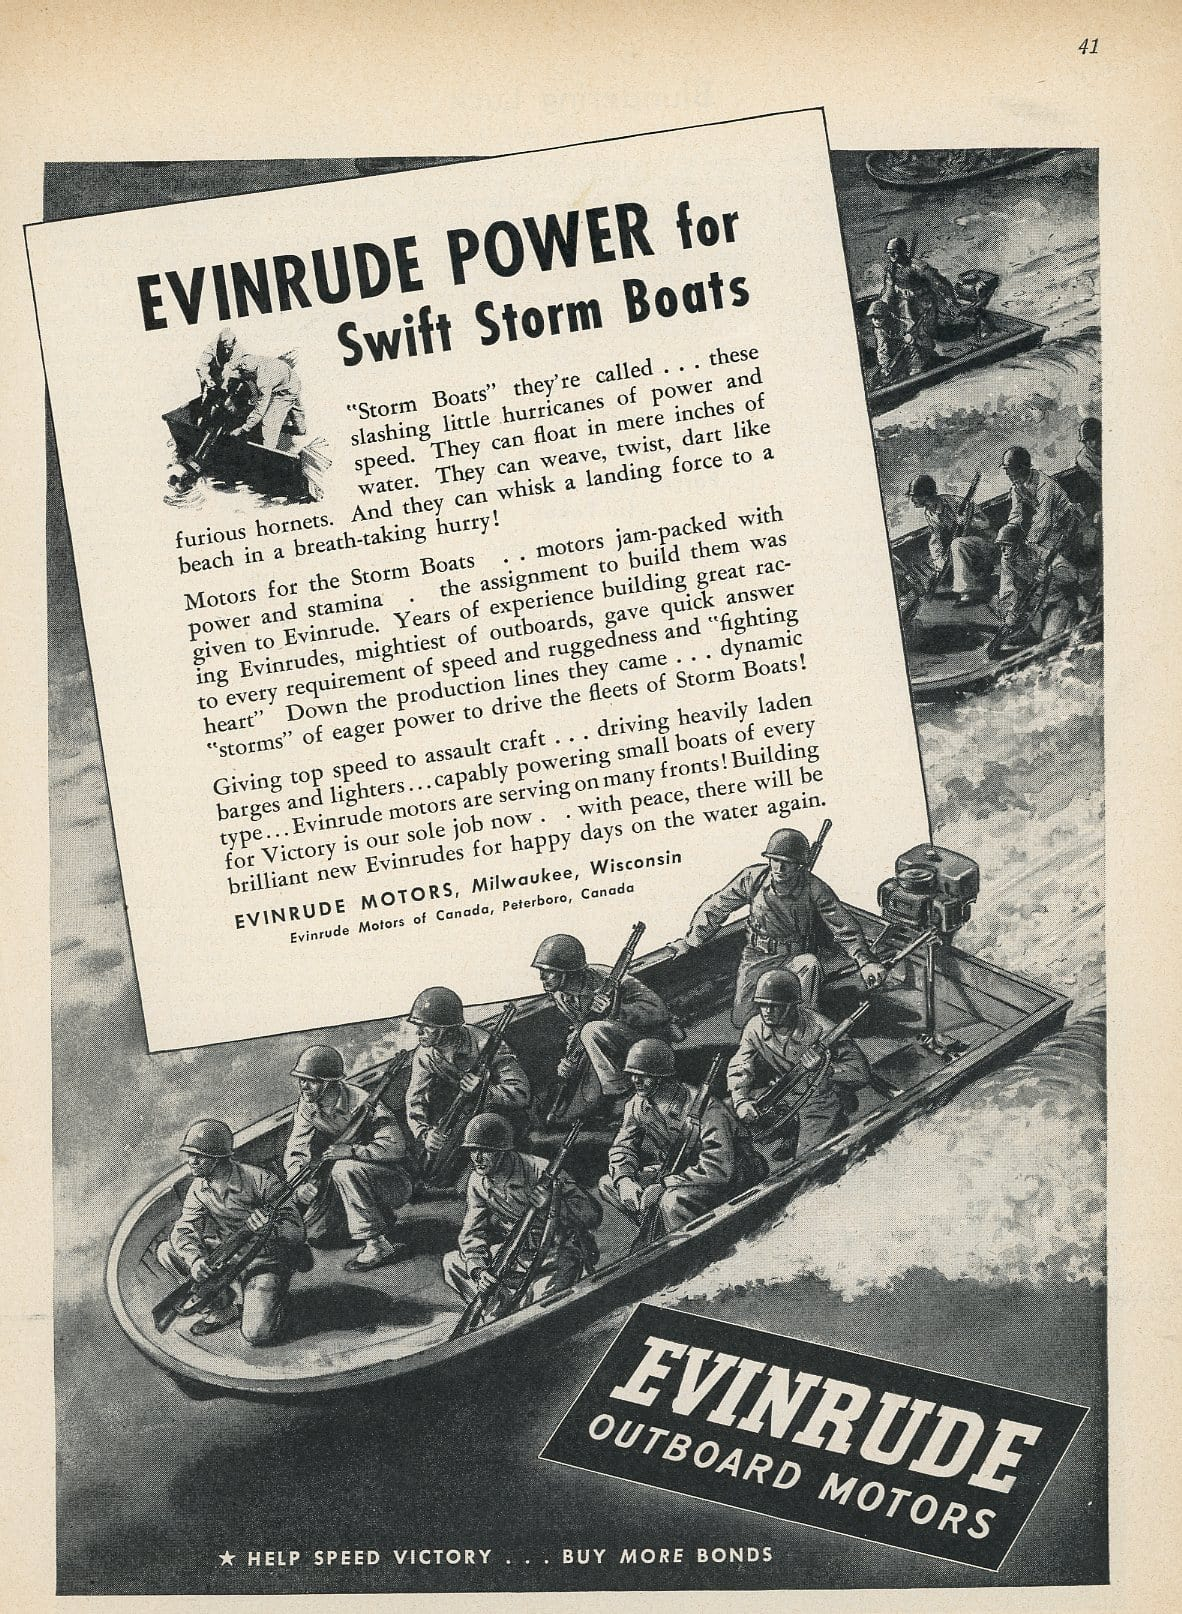 1960's Evinrude Outboard Motor Advertisement - Boat Enthusiast Gift Art - Man Cave Wall Hanging